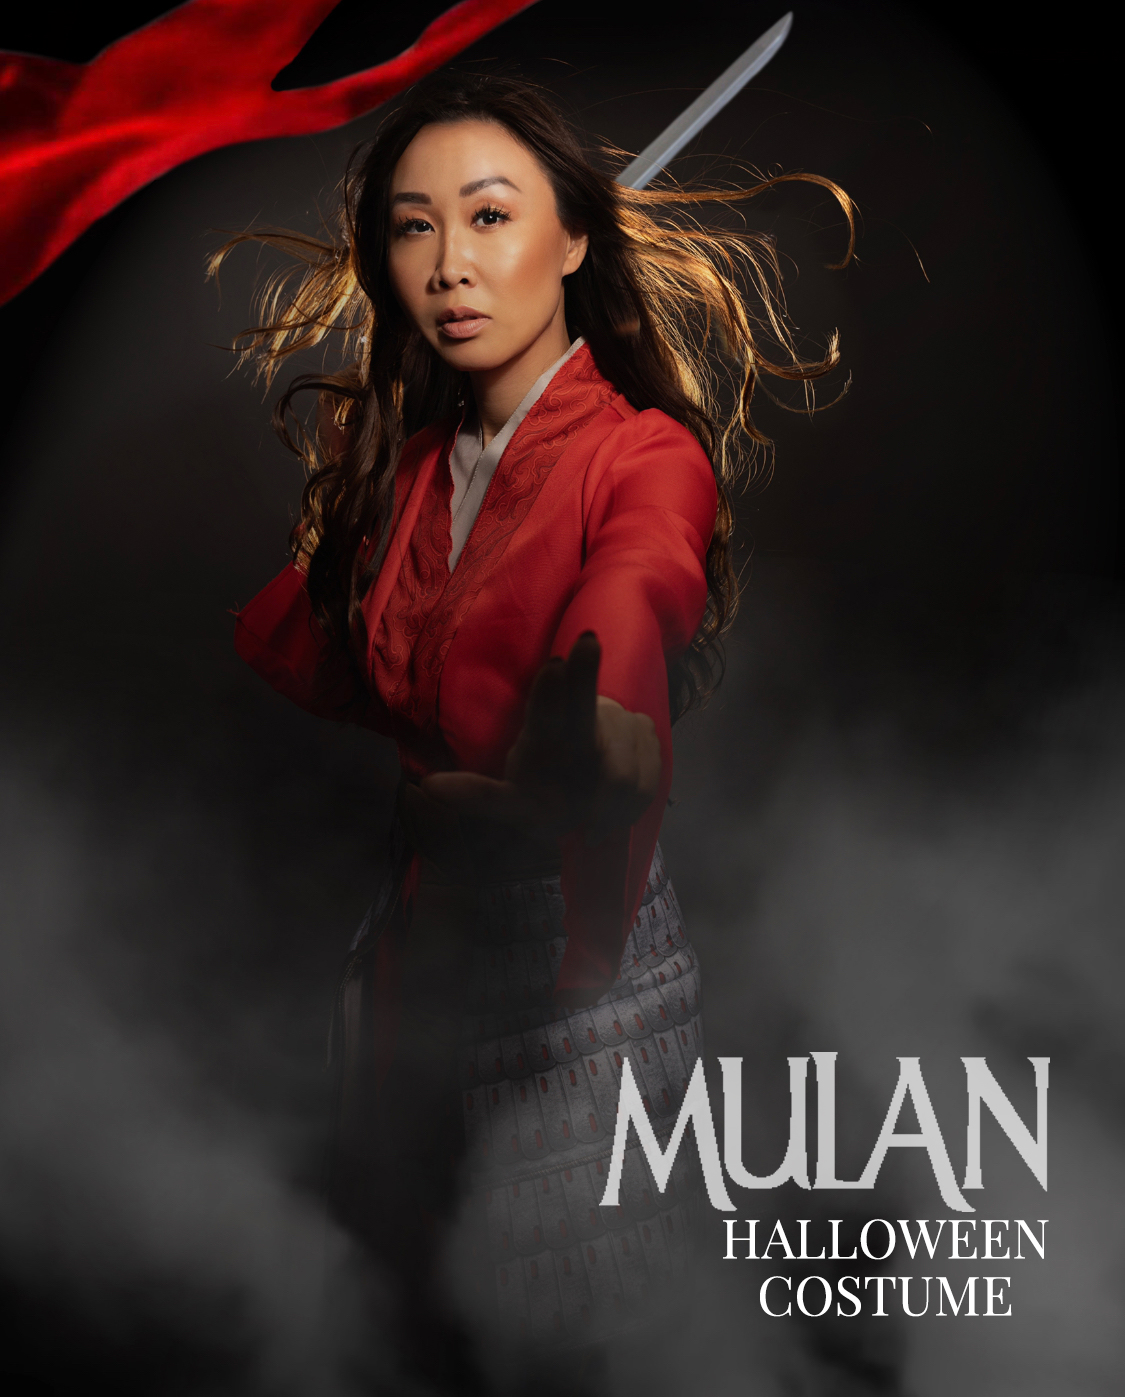 Mulan halloween costume idea inspiration Mulan pose fighting pose photoshop